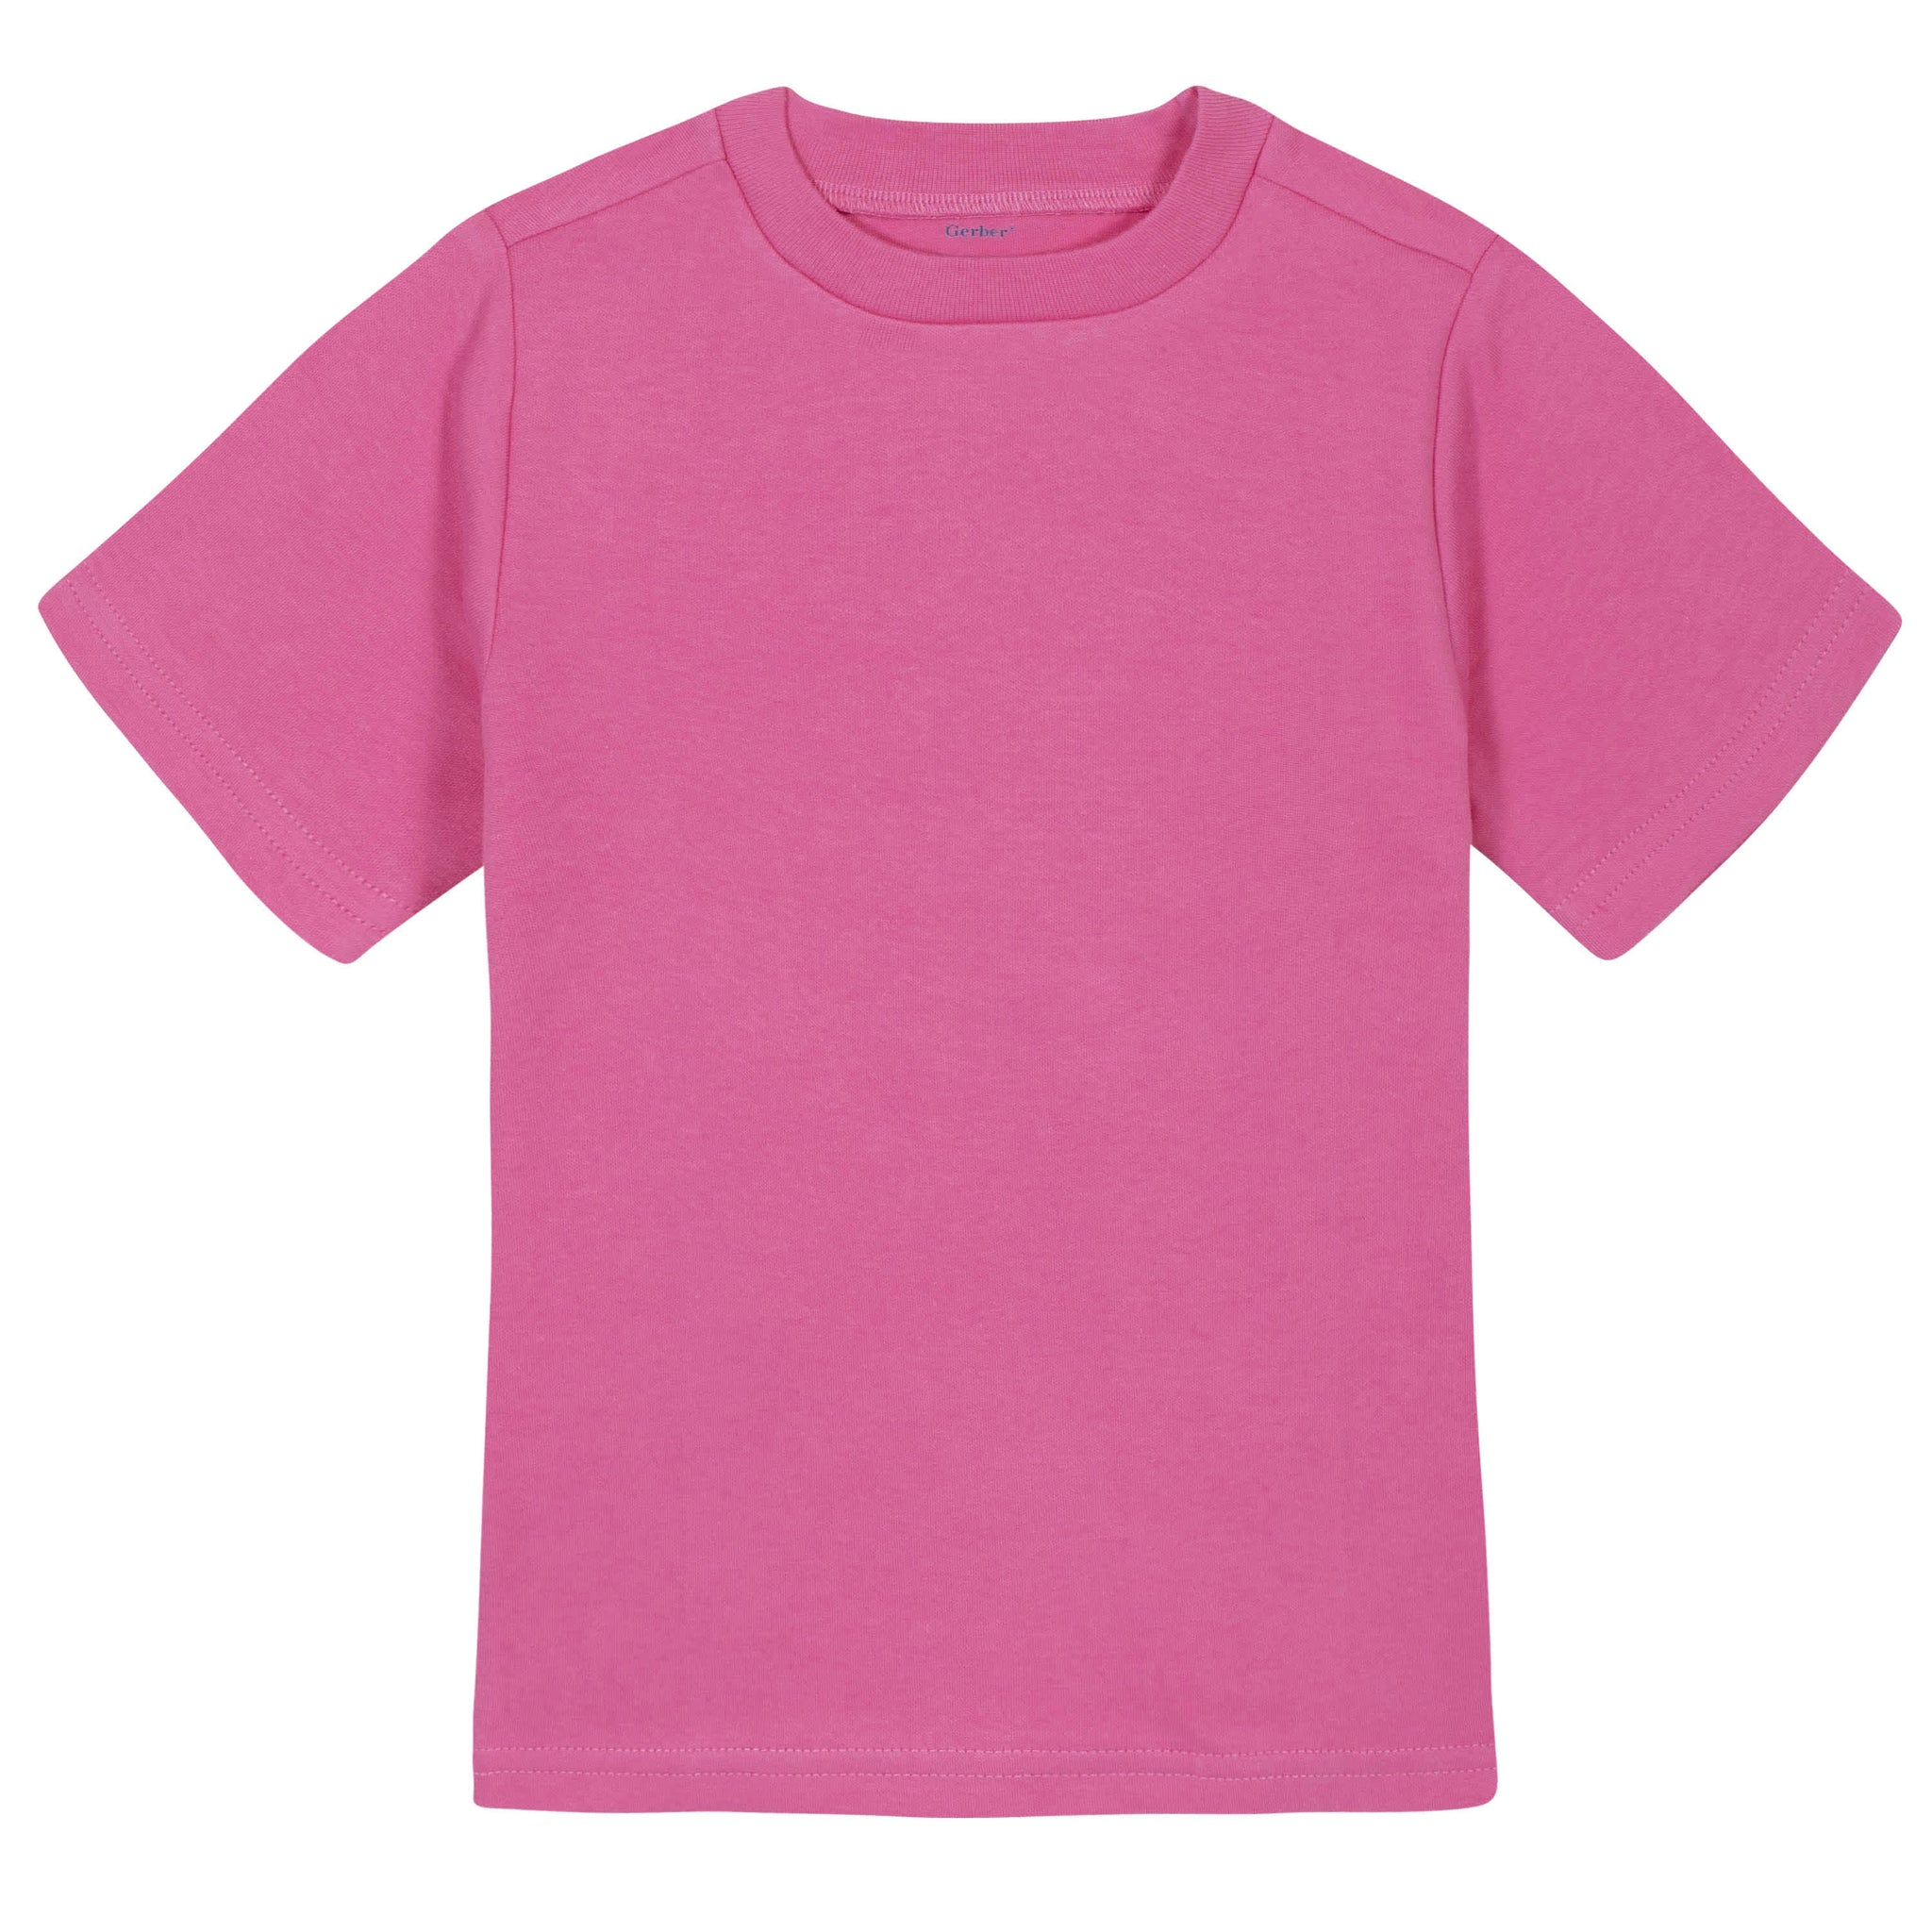 Gerber® Premium Hot Pink Short Sleeve Tee Shirt - 10 Colors Available